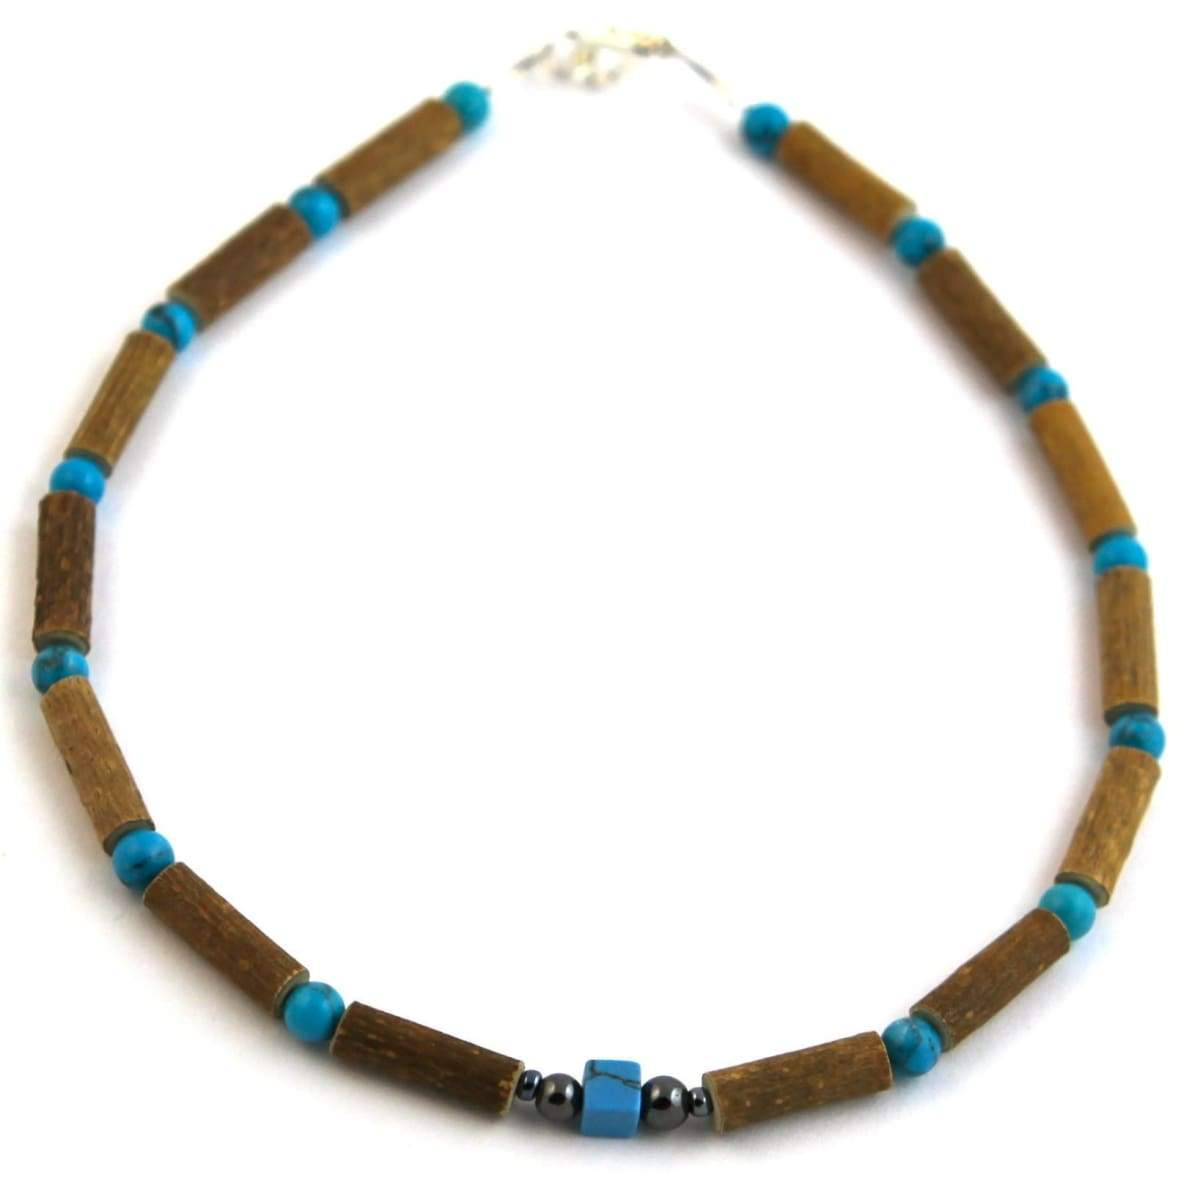 Hazel-Gemstone Turquoise - 11 Necklace - Lobster Claw Clasp - Hazelwood & Gemstone Jewelry